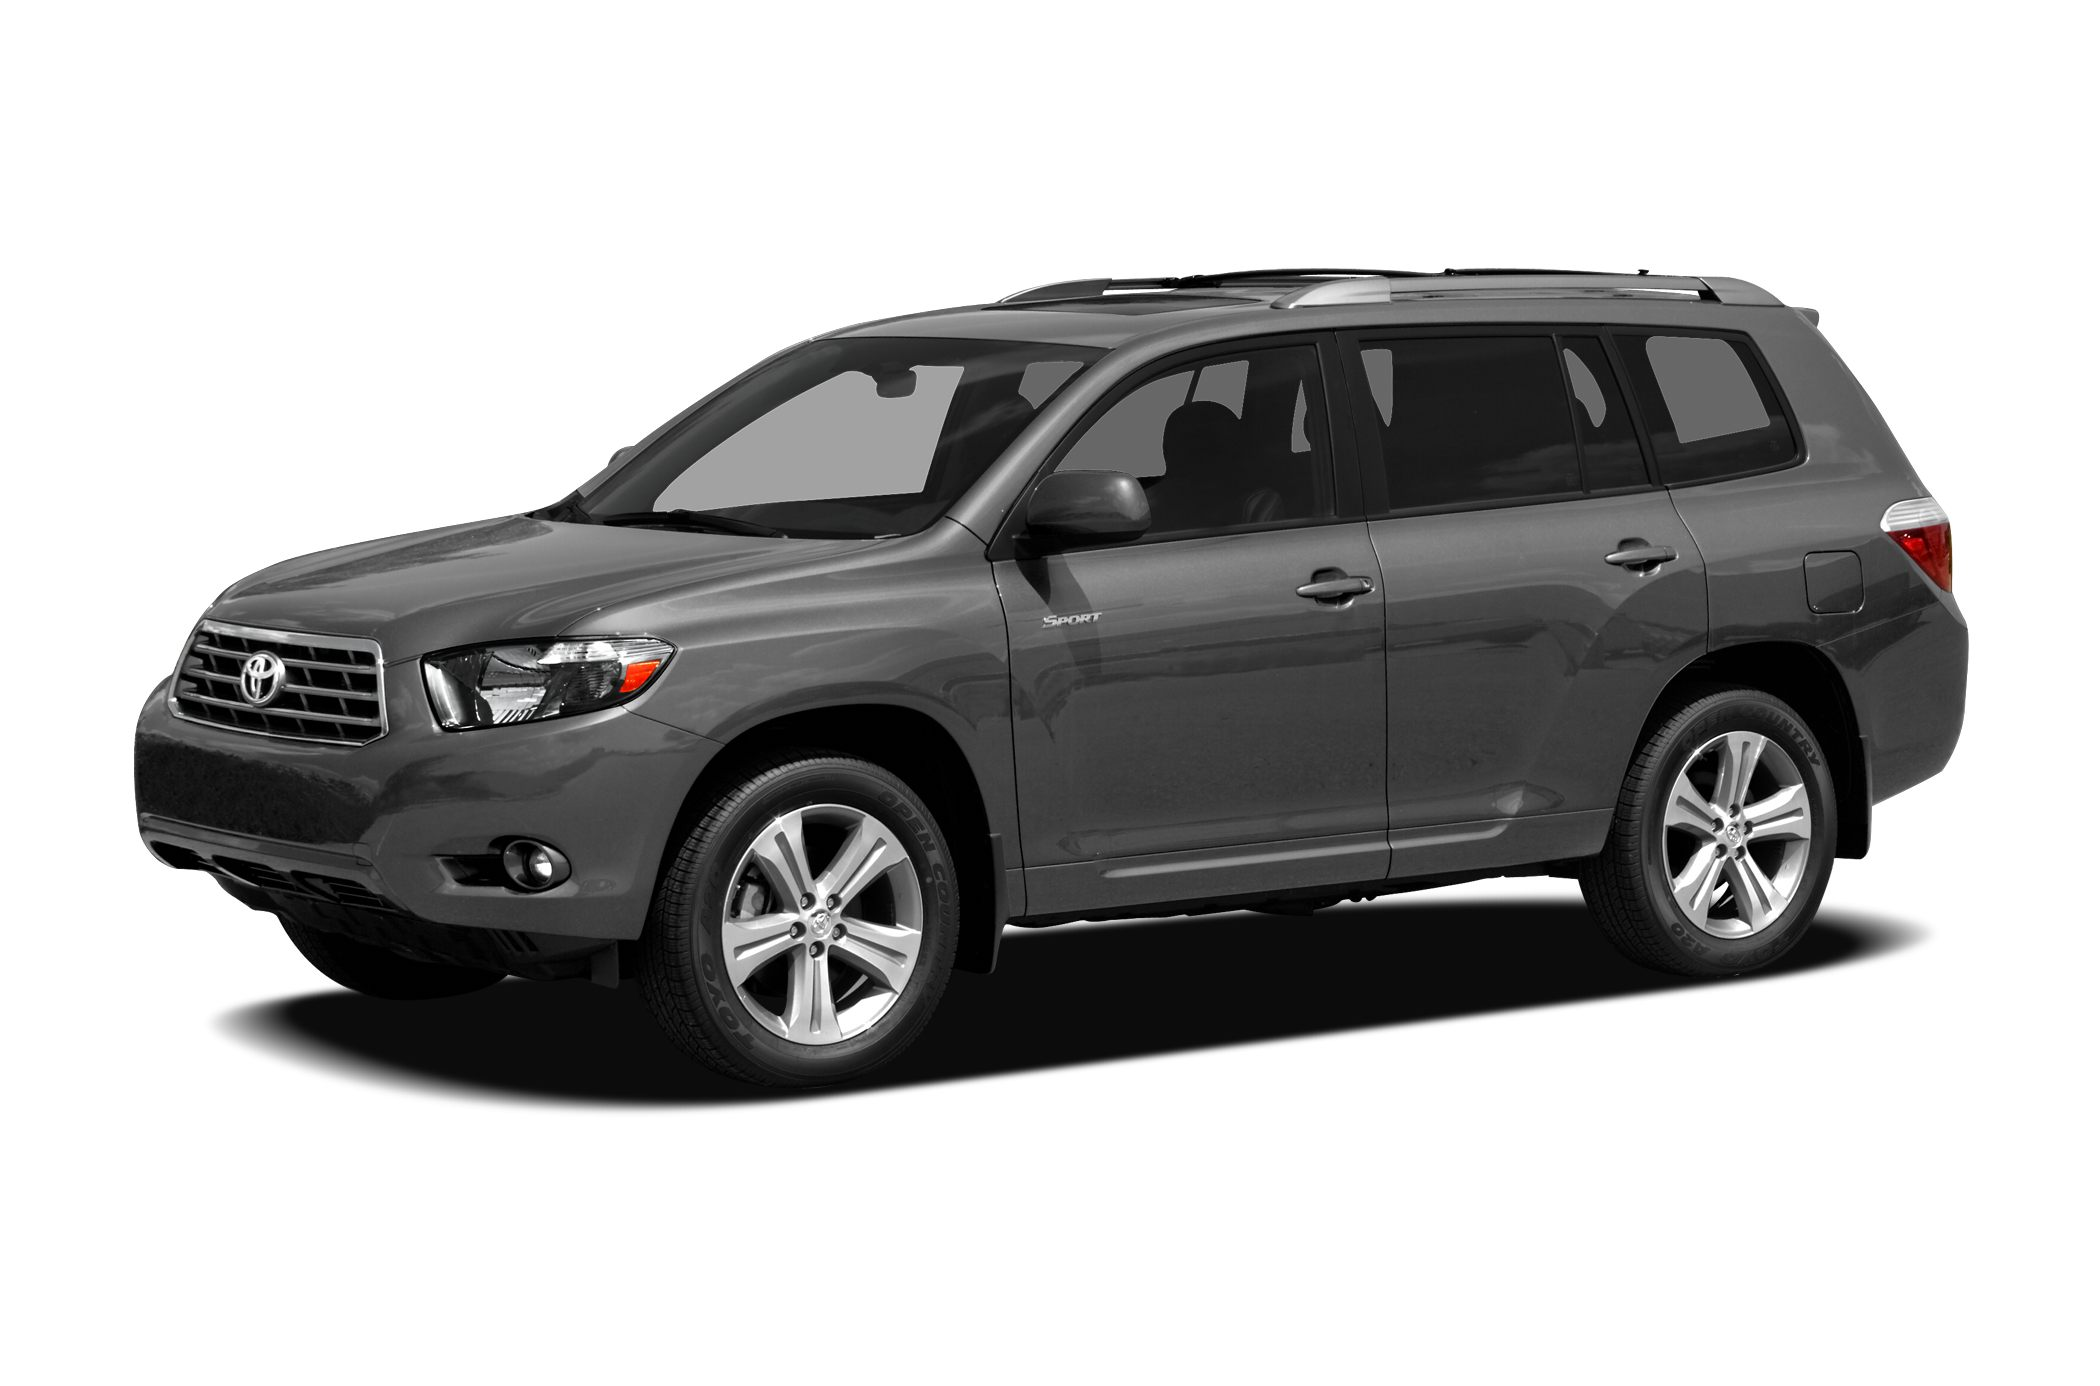 2008 Toyota Highlander Sport SUV for sale in Findlay for $16,844 with 140,567 miles